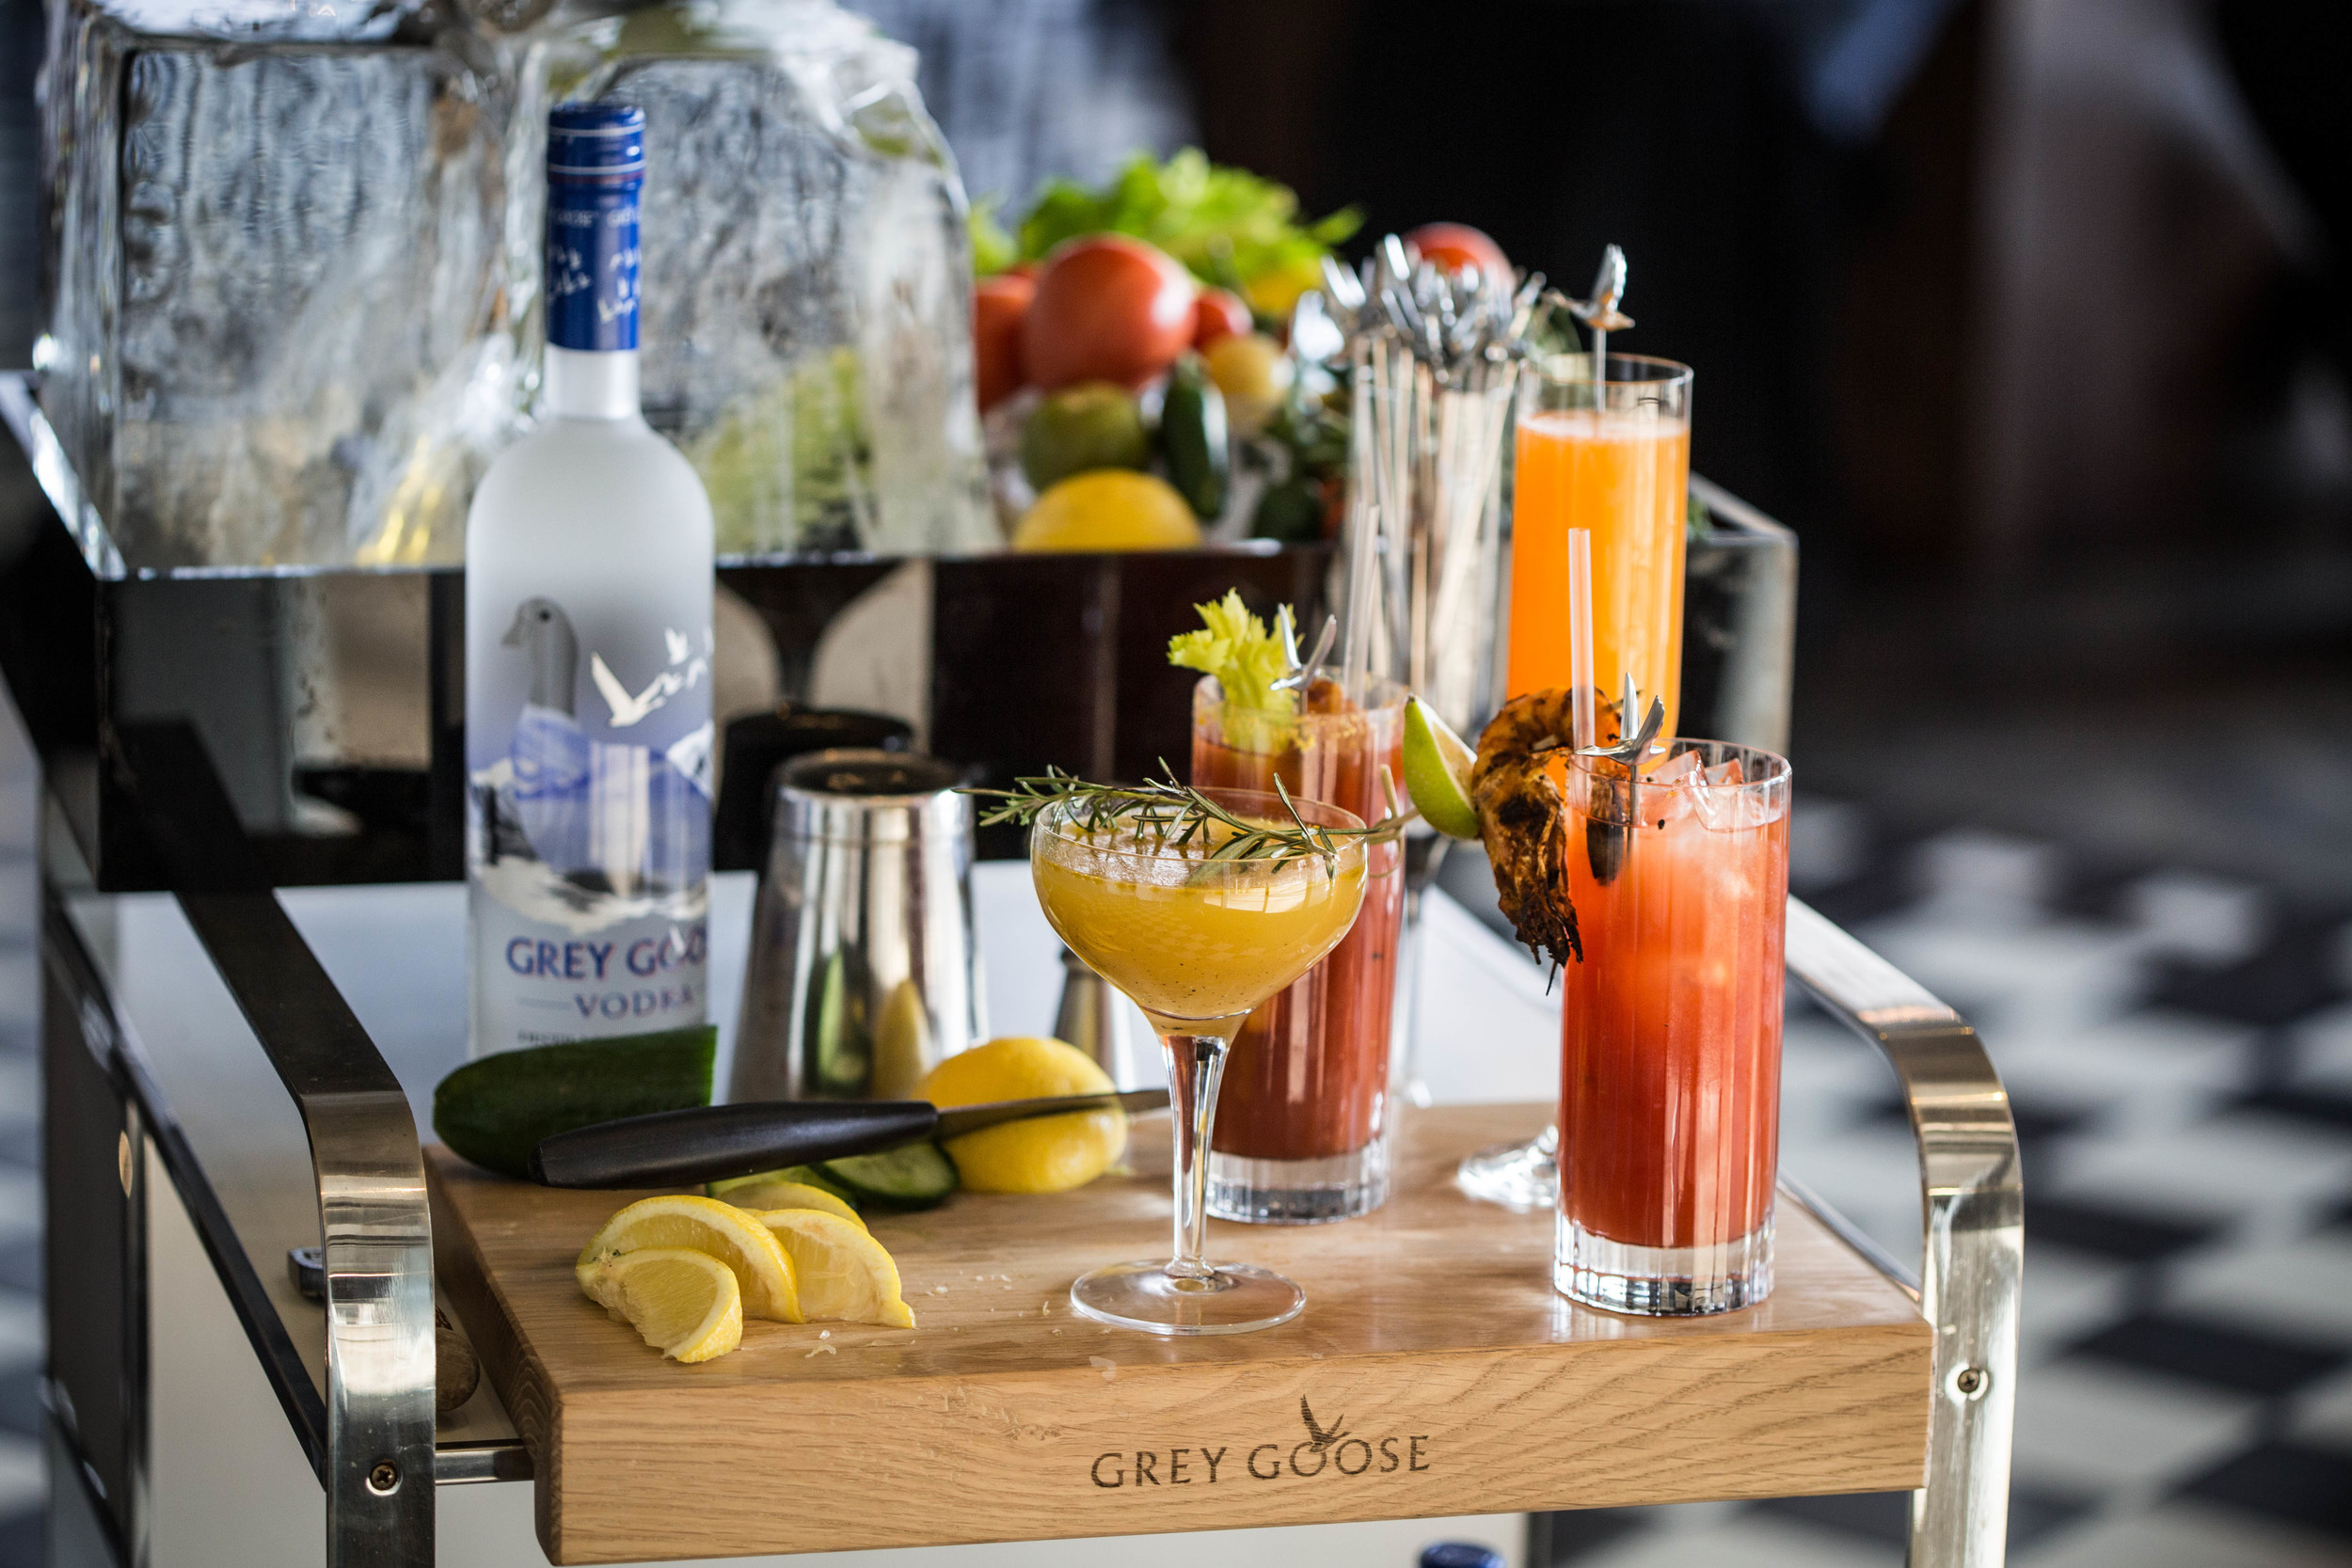 Grey Goose Vodka - Bloody Mary Drinks Trolley